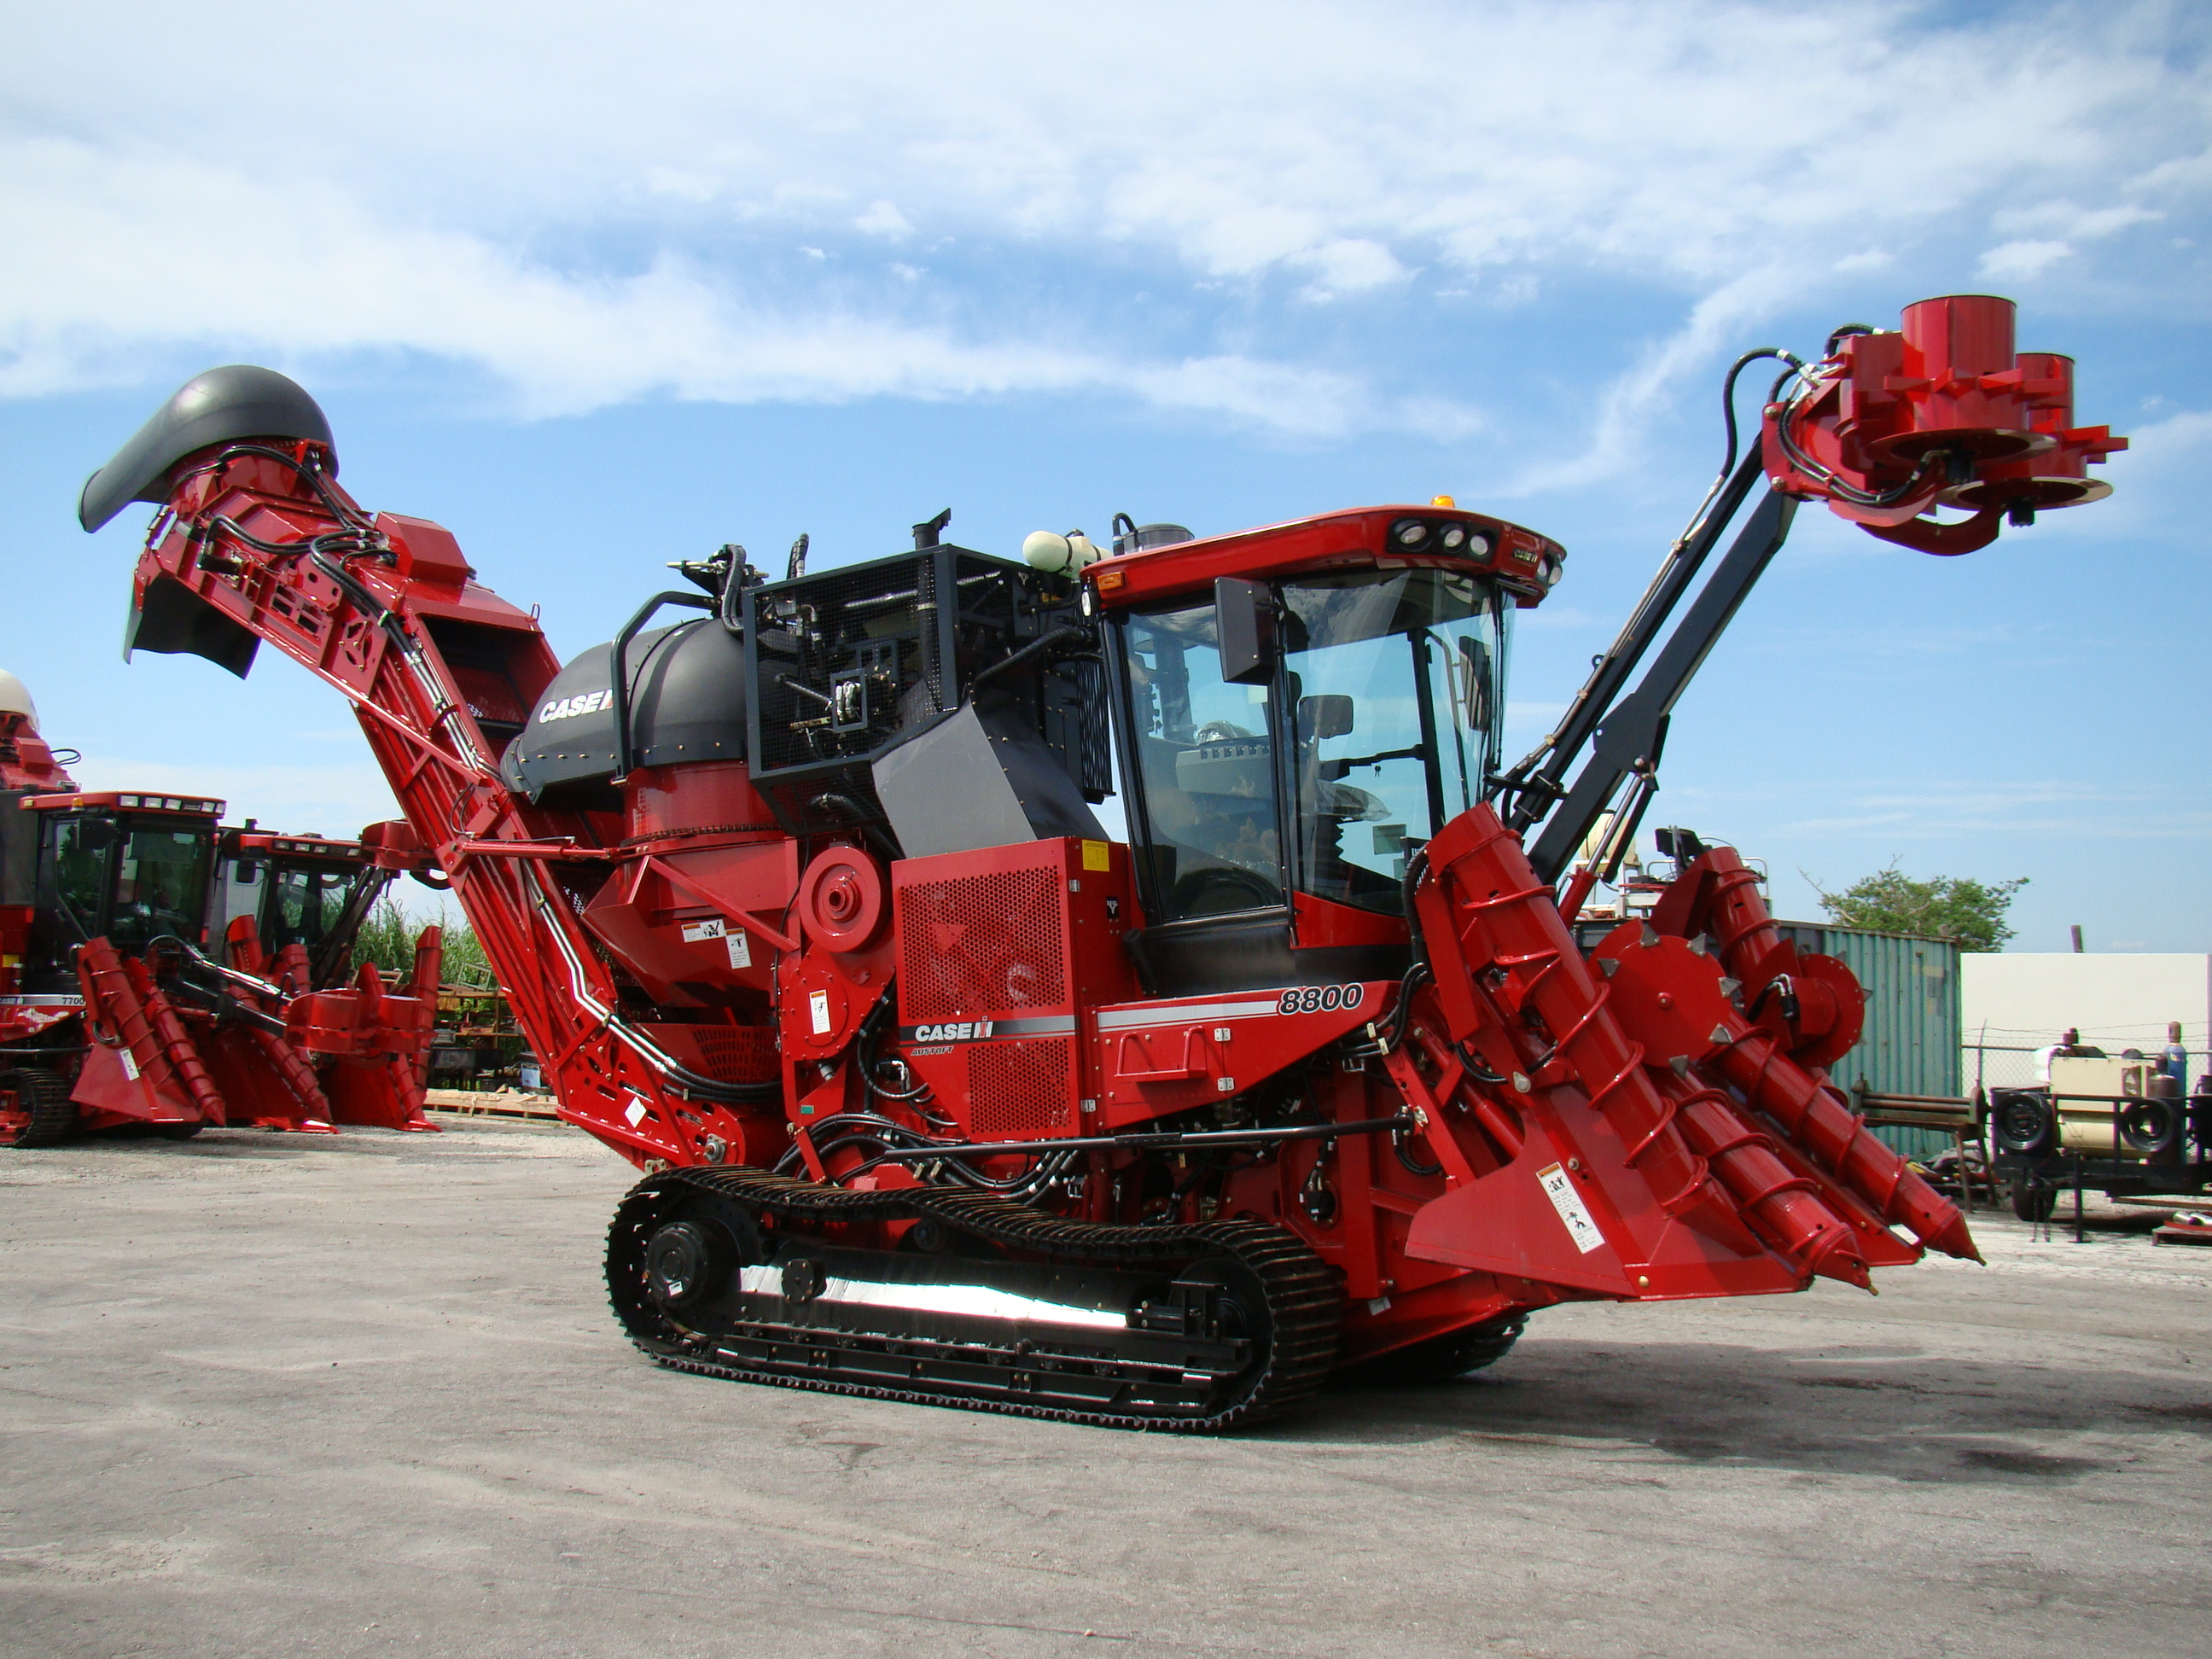 Cameco Sugar Cane Harvester : Sugar cane harvesters for sale